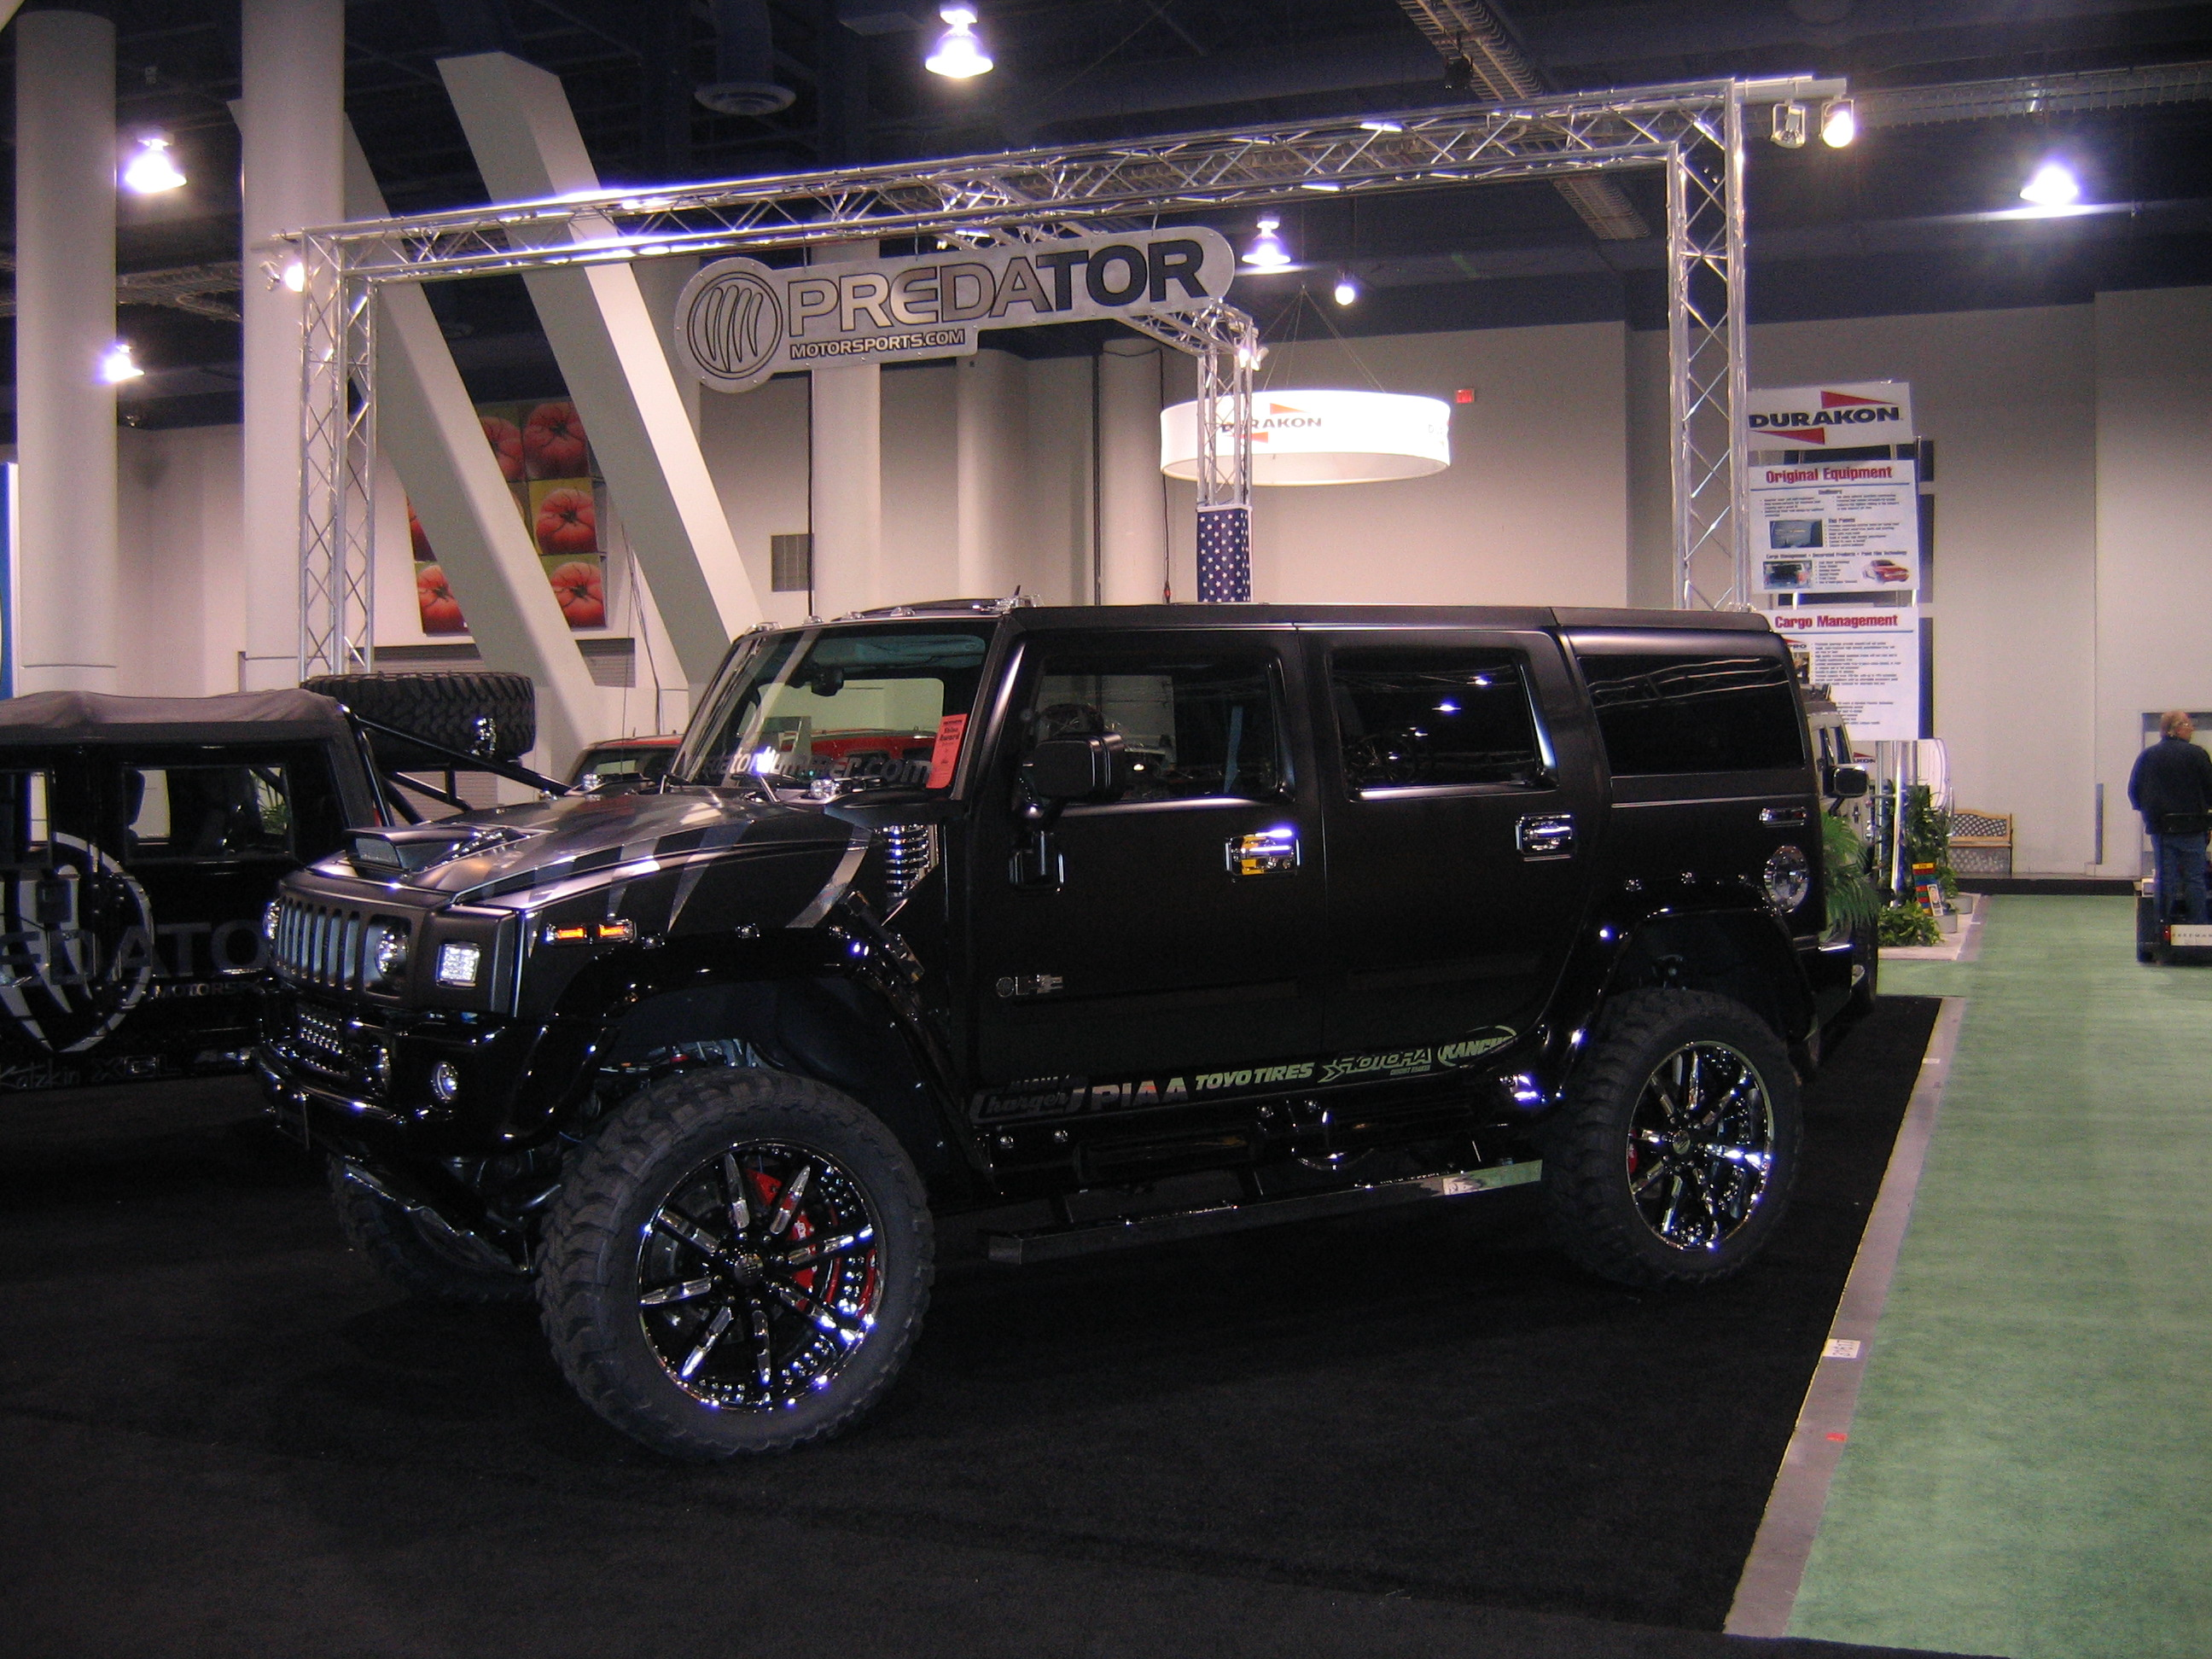 H2 AND H1 Hummers with the Duramax Allion were being inspected by